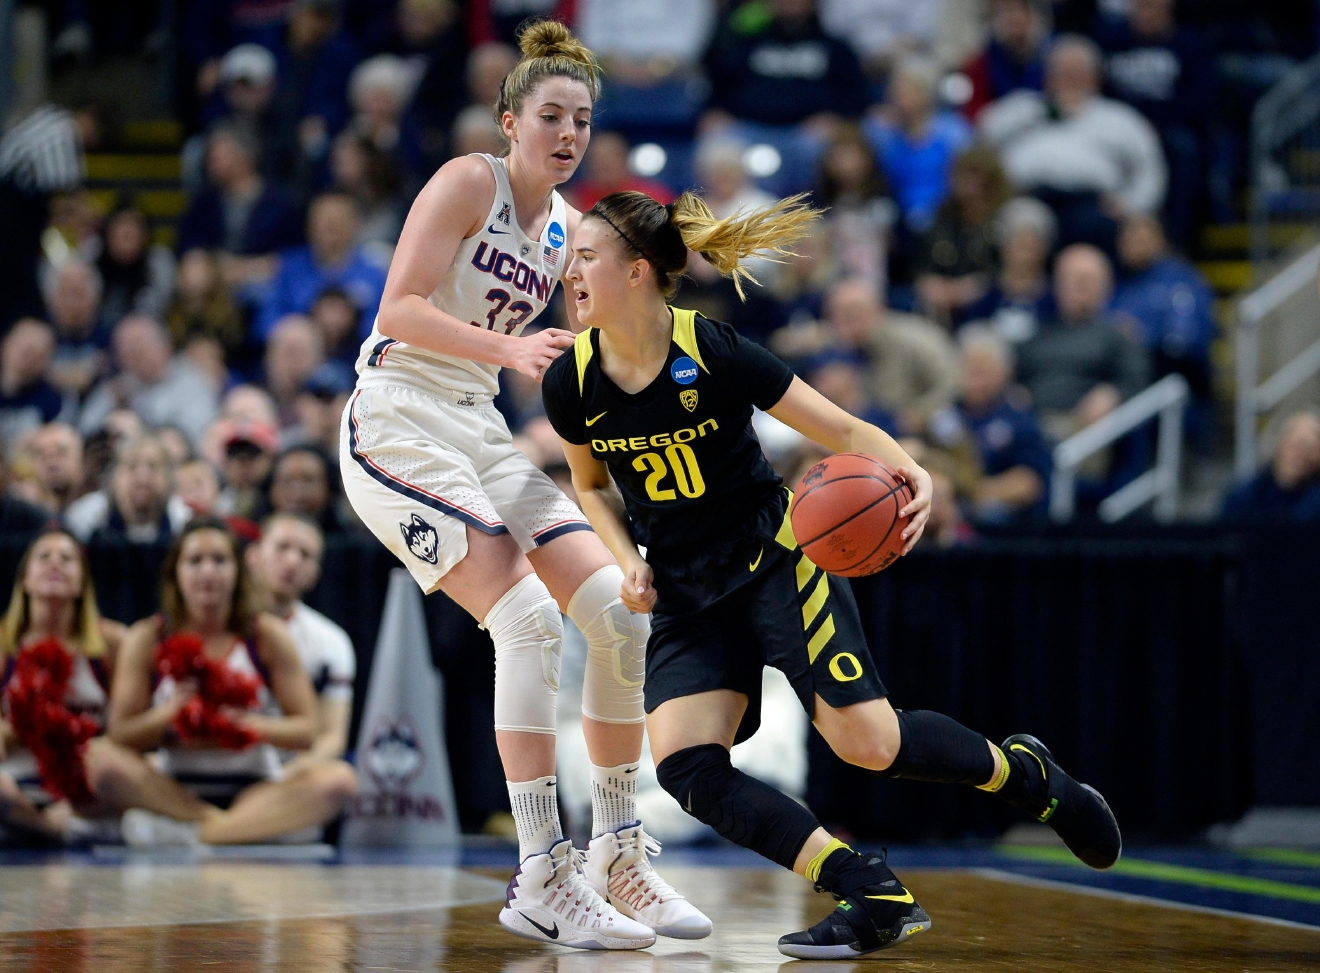 Oregon's Sabrina Ionescu drives against Connecticut's Katie Lou Samuelson during the first half of a regional final game in the NCAA women's college basketball tournament, Monday, March 27, 2017, in Bridgeport, Conn. (AP Photo/Jessica Hill)